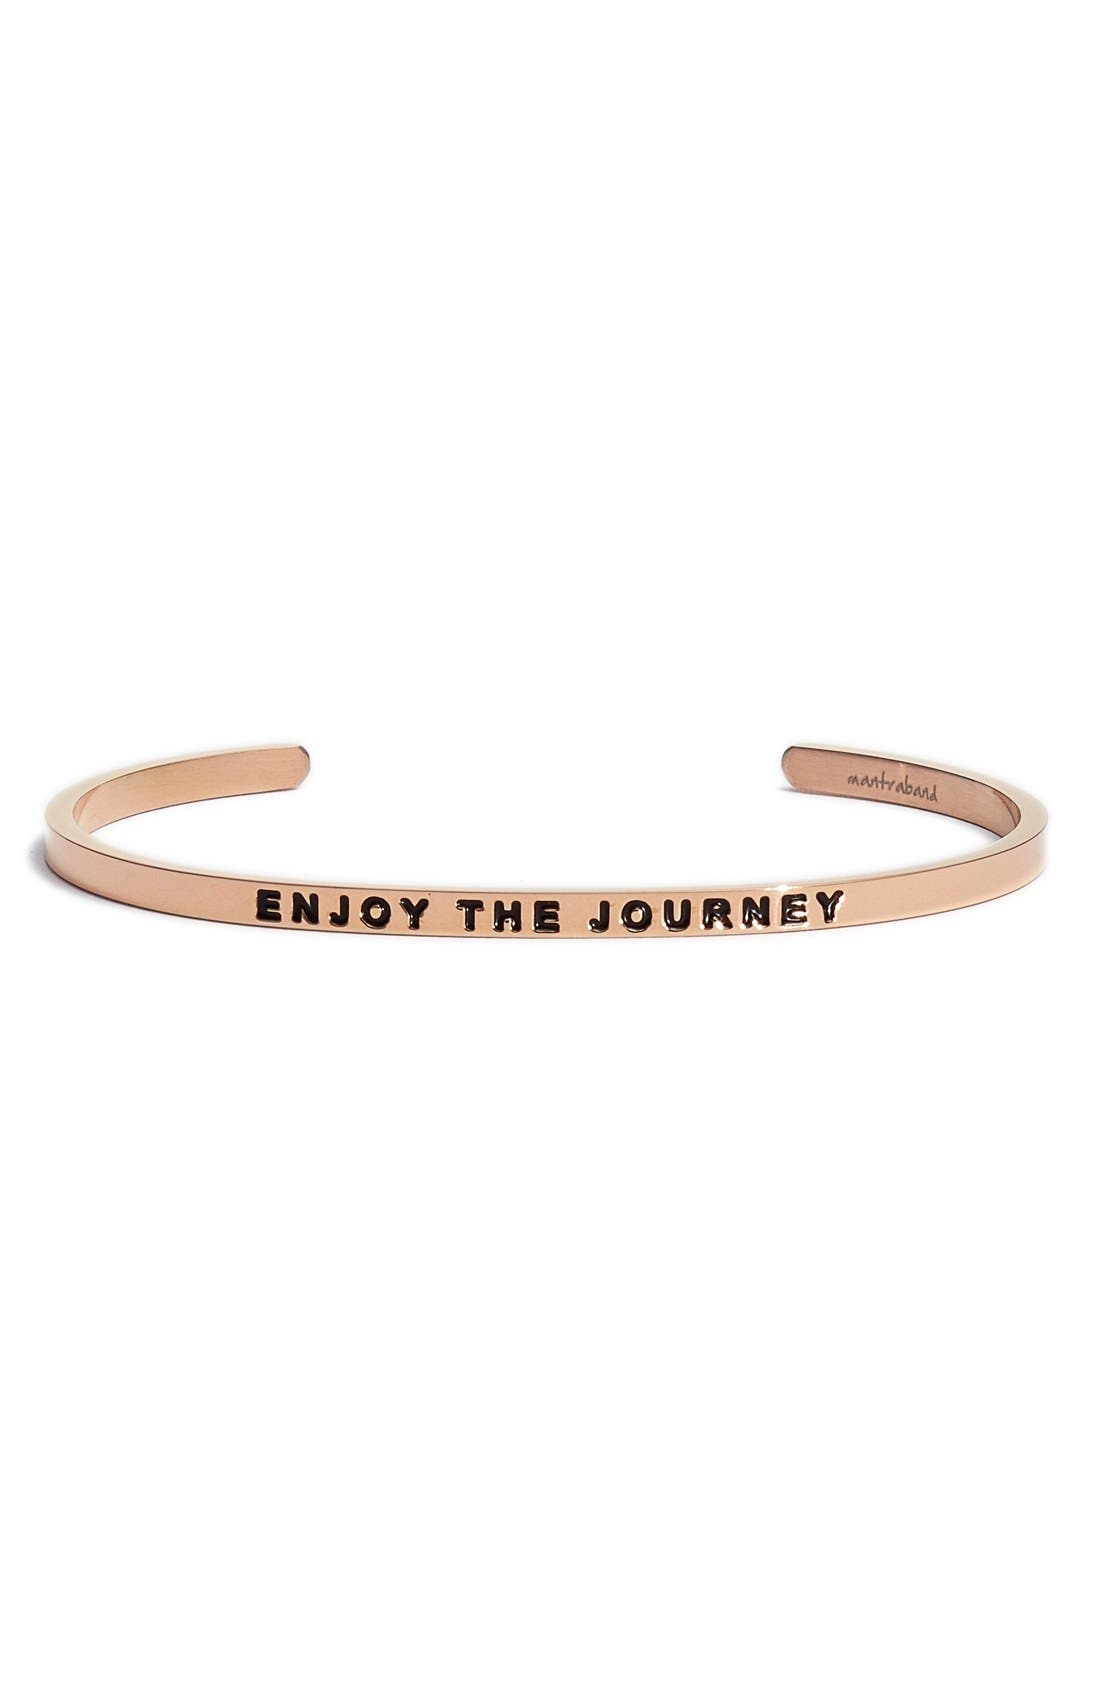 'Enjoy the Journey' Cuff,                             Main thumbnail 1, color,                             ROSE GOLD